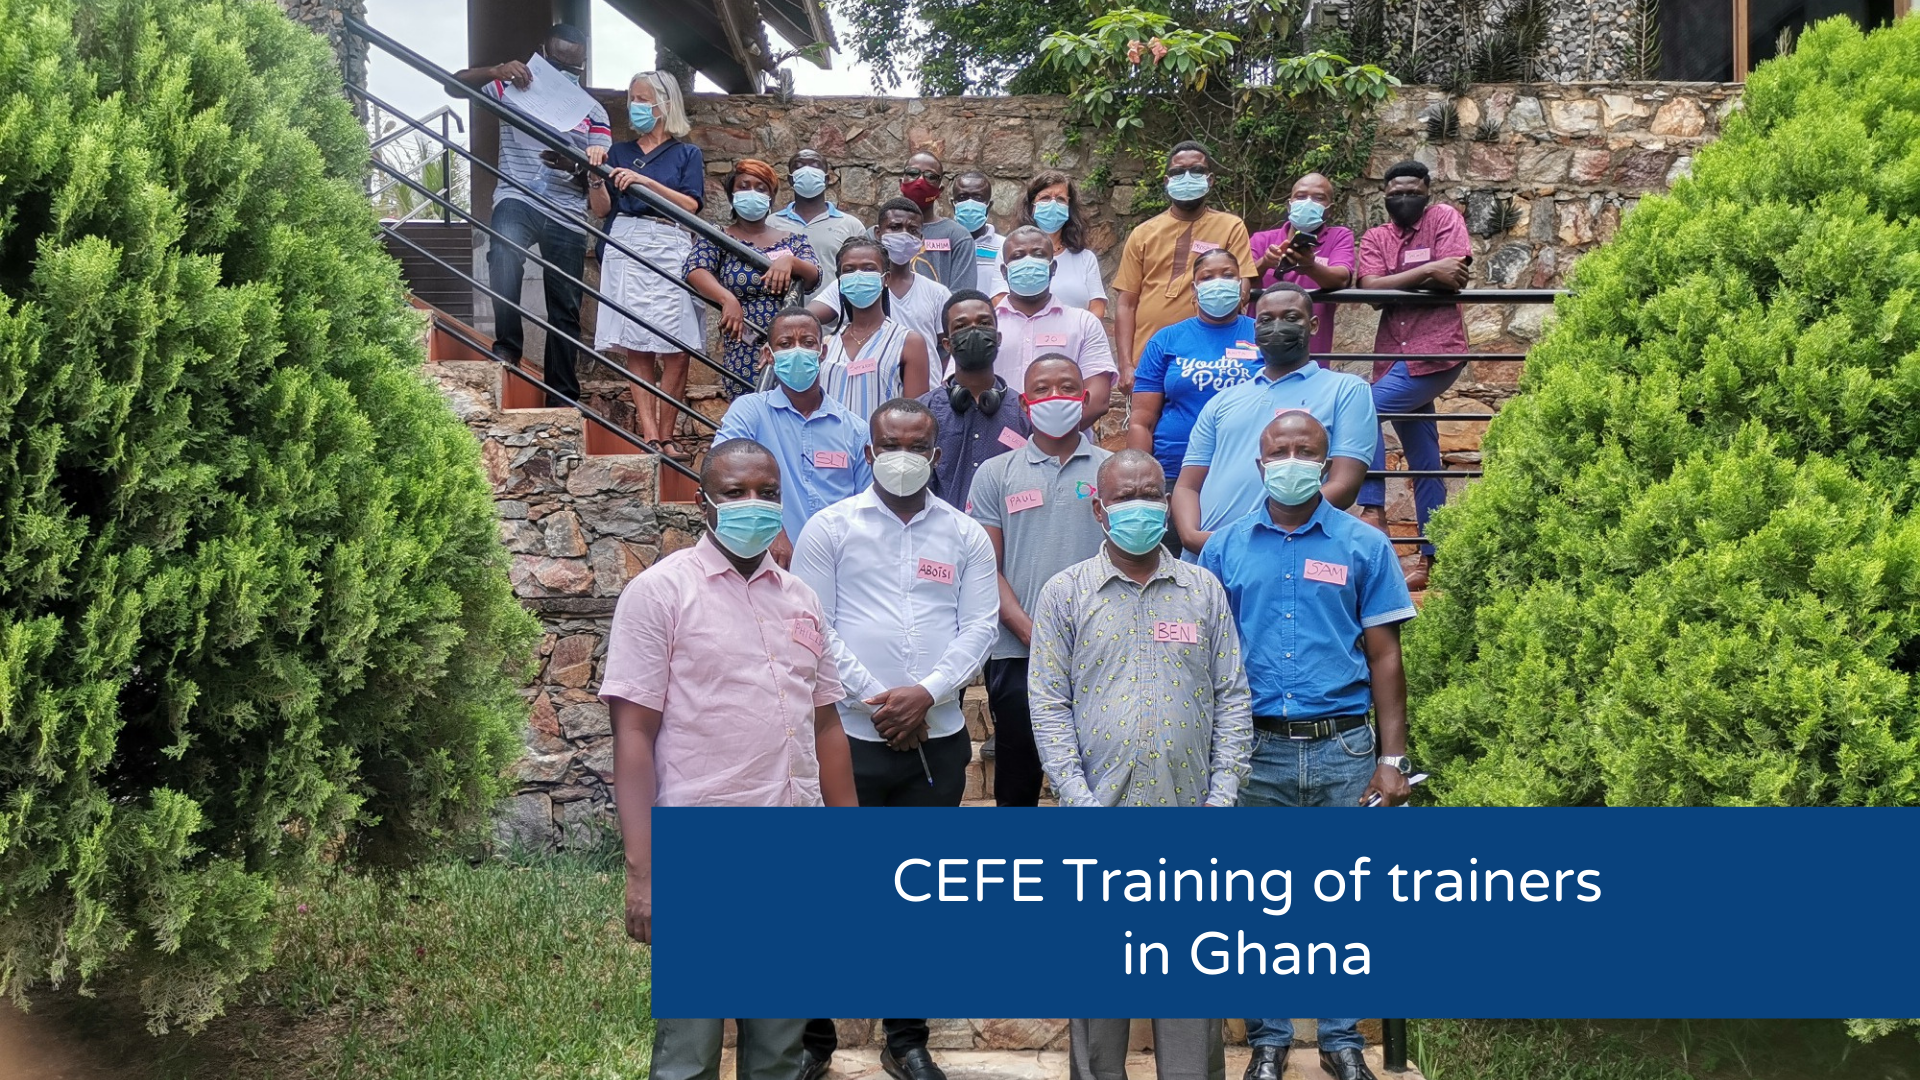 CEFE Training of Trainers in Ghana